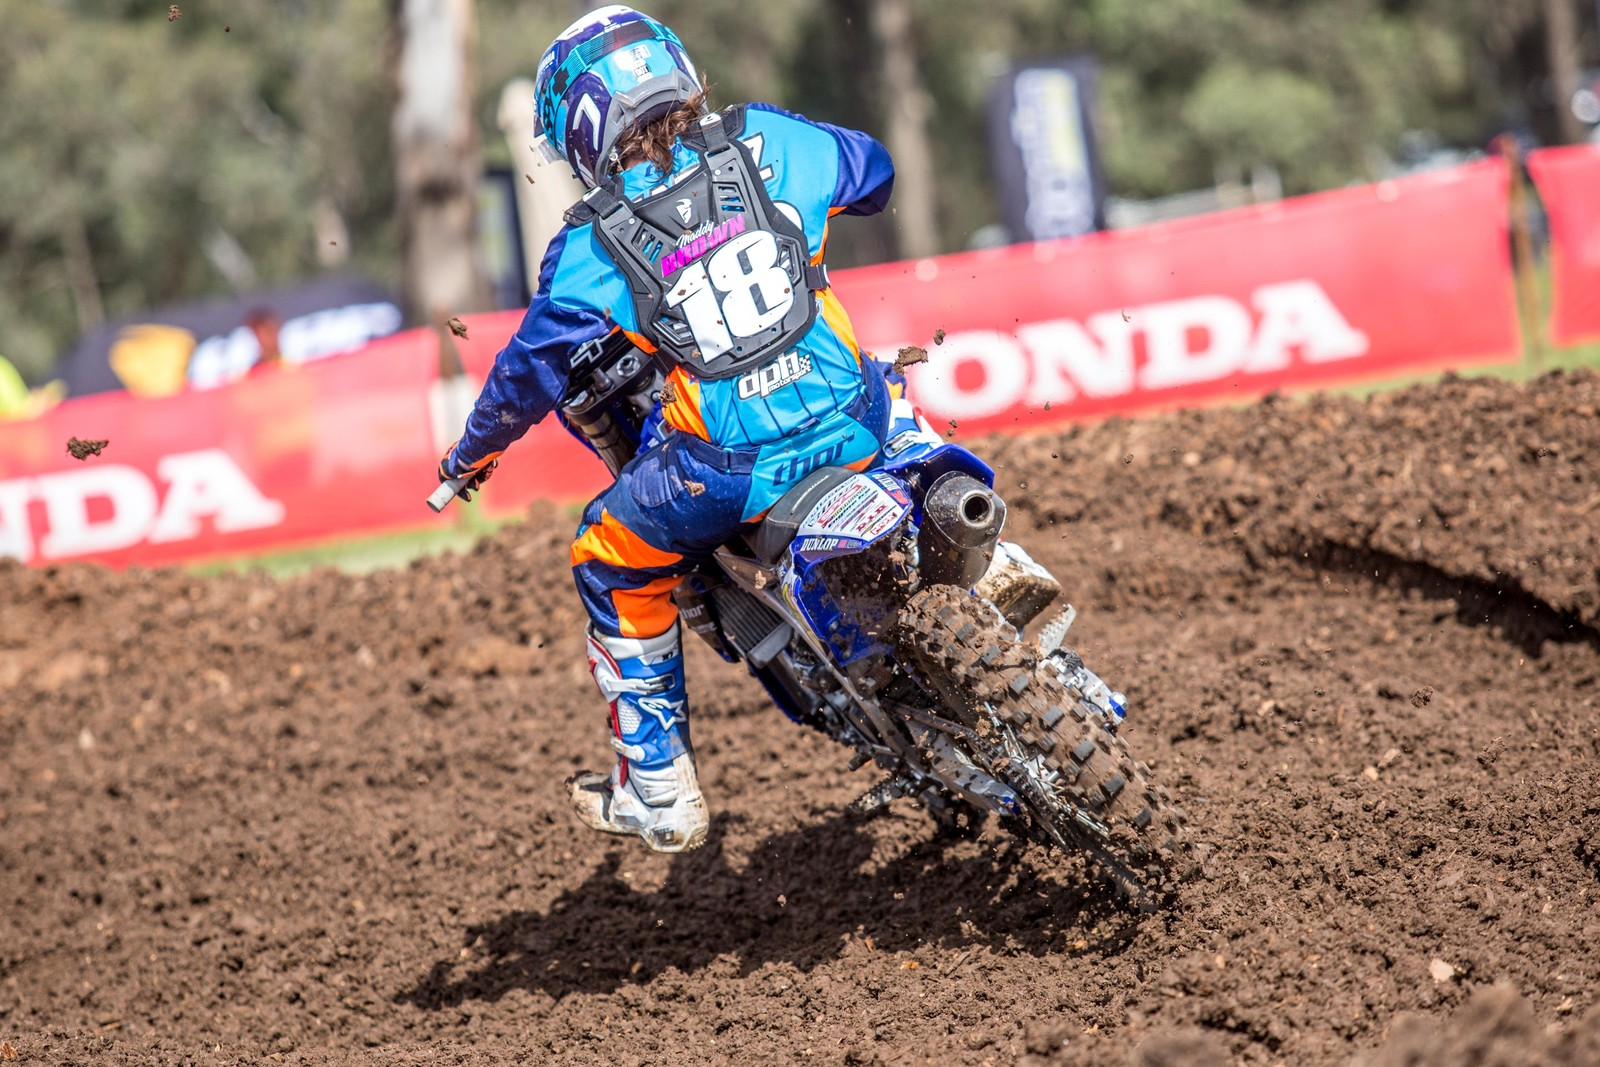 Maddy Brown - Australian Motul Motocross Nationals Round 2, Appin - Motocross Pictures - Vital MX